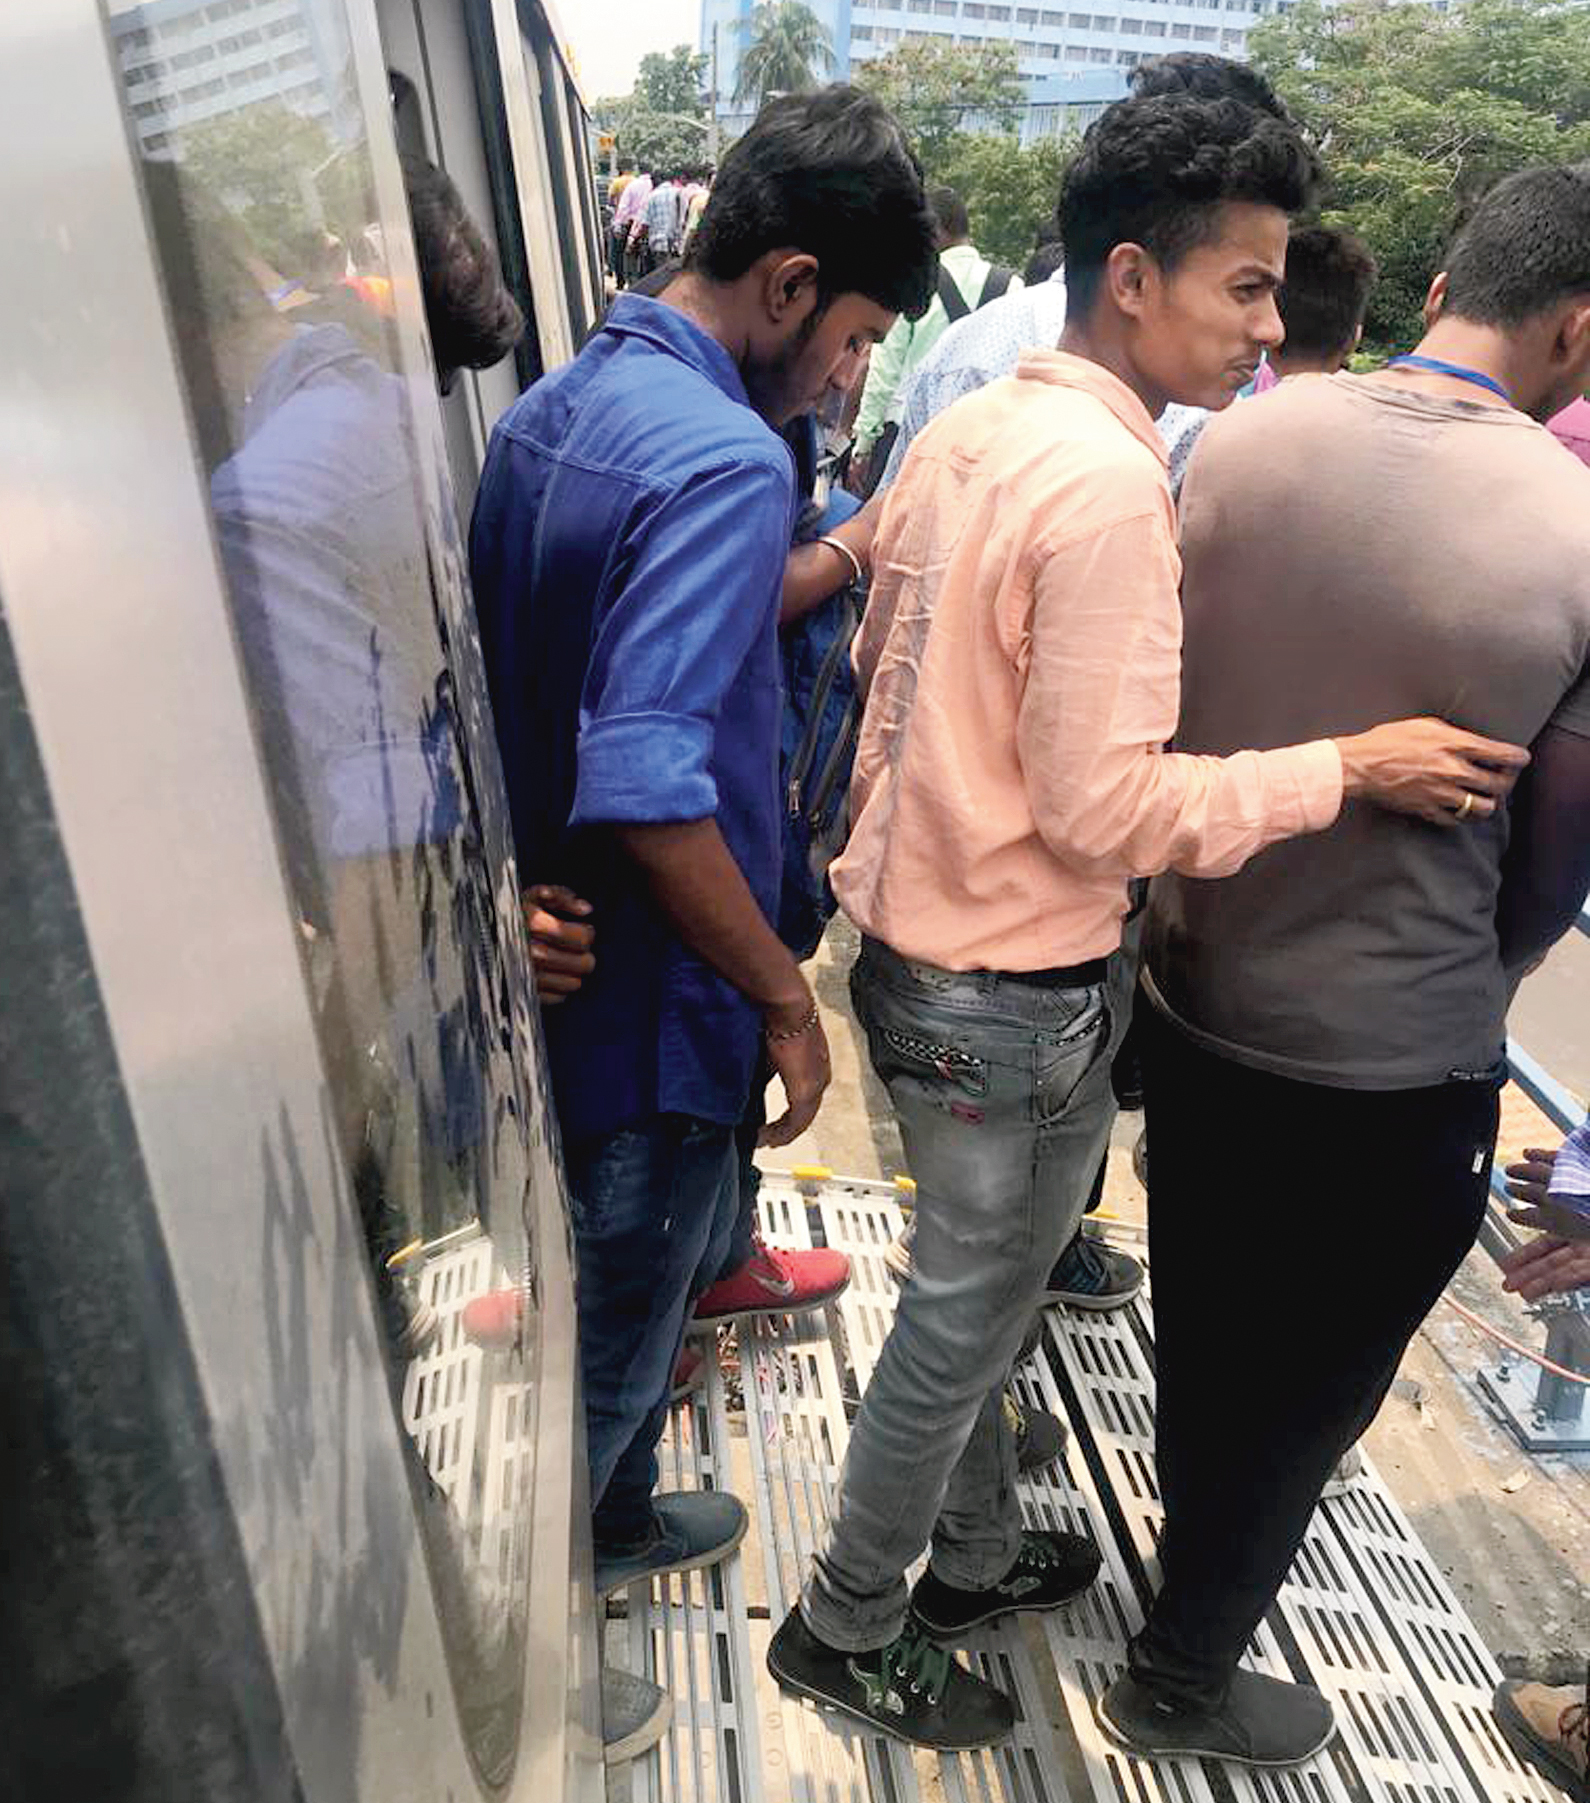 Passengers being evacuated from an East-West Metro train between two stations during a trial on Monday.